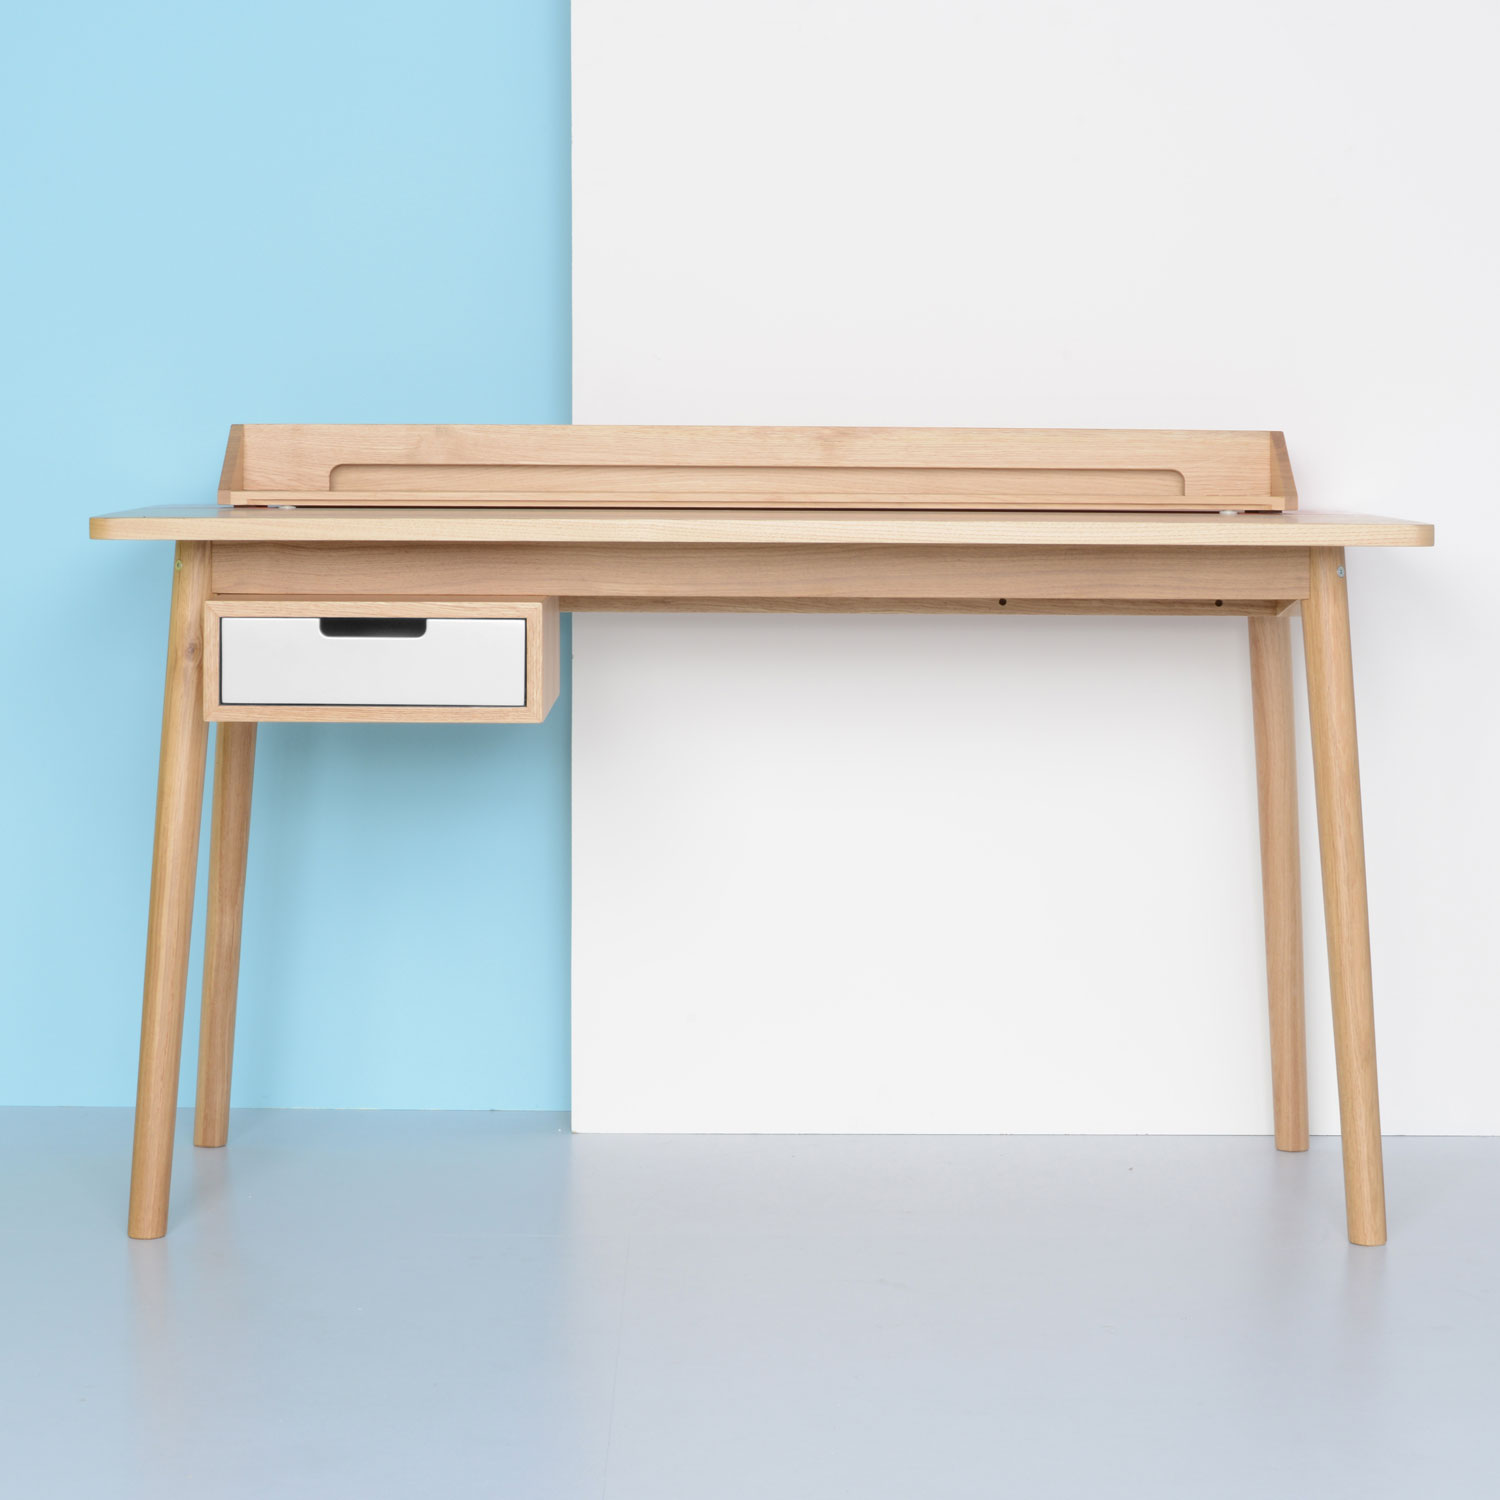 Design for Kids A Selection on Playful Furniture at 2016 (7) maison objet Design for Kids: A Selection on Playful Furniture at Maison Objet 2016 Design for Kids A Selection on Playful Furniture at Maison Objet 2016 7